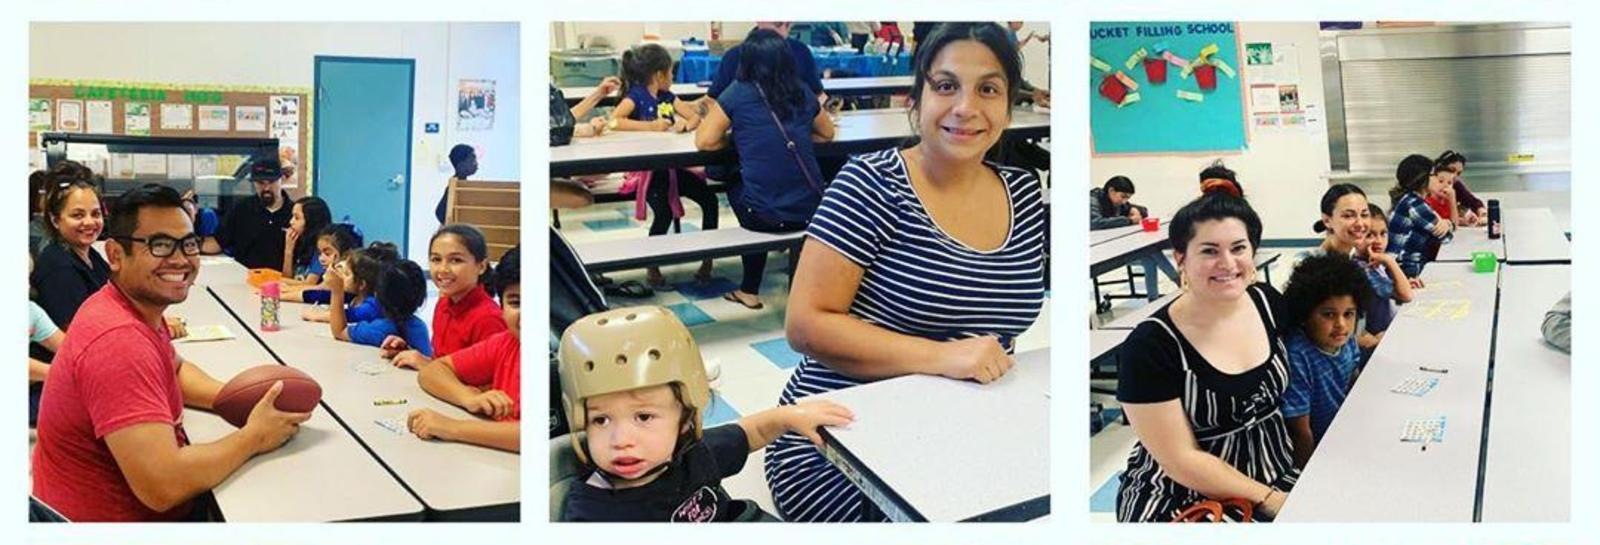 Armstrong PTA Bingo night - On September 20th Armstrong PTA brought families together for #Bingo #capta #PTA #armstrongeagles #proud2bepusd http://edl.io/n1097324